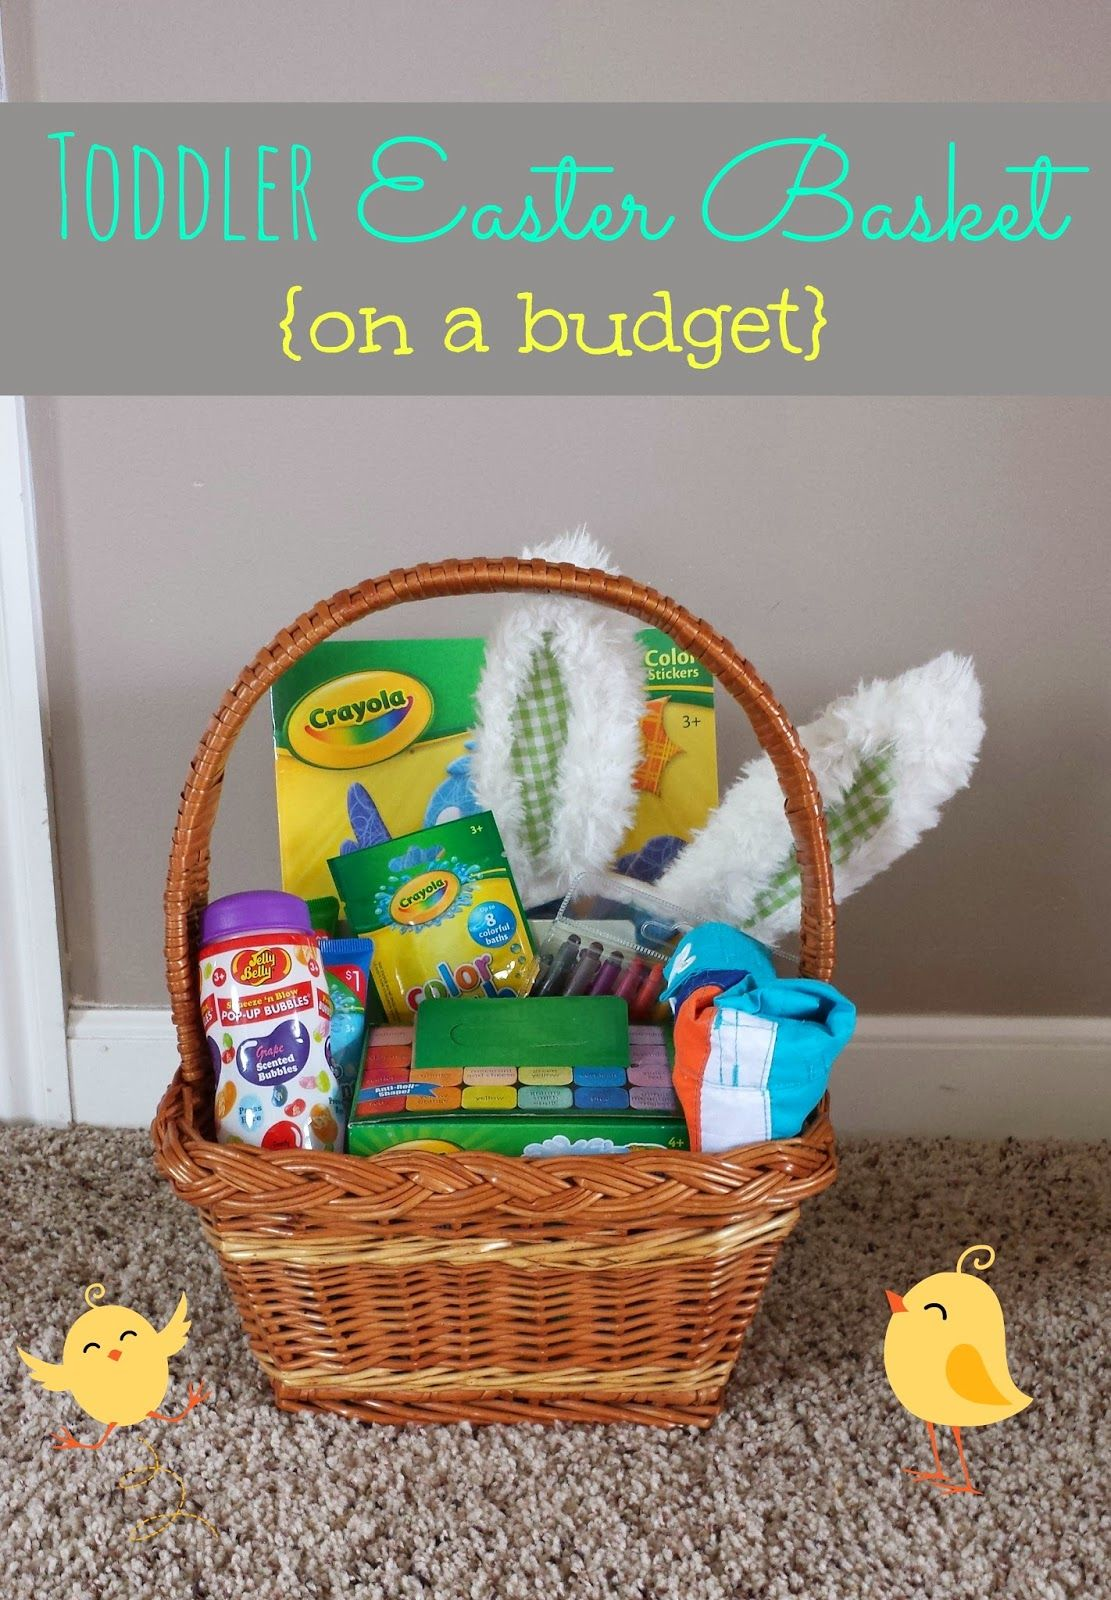 Toddler easter basket ideas on a budget holiday ideas toddler easter basket ideas on a budget negle Gallery